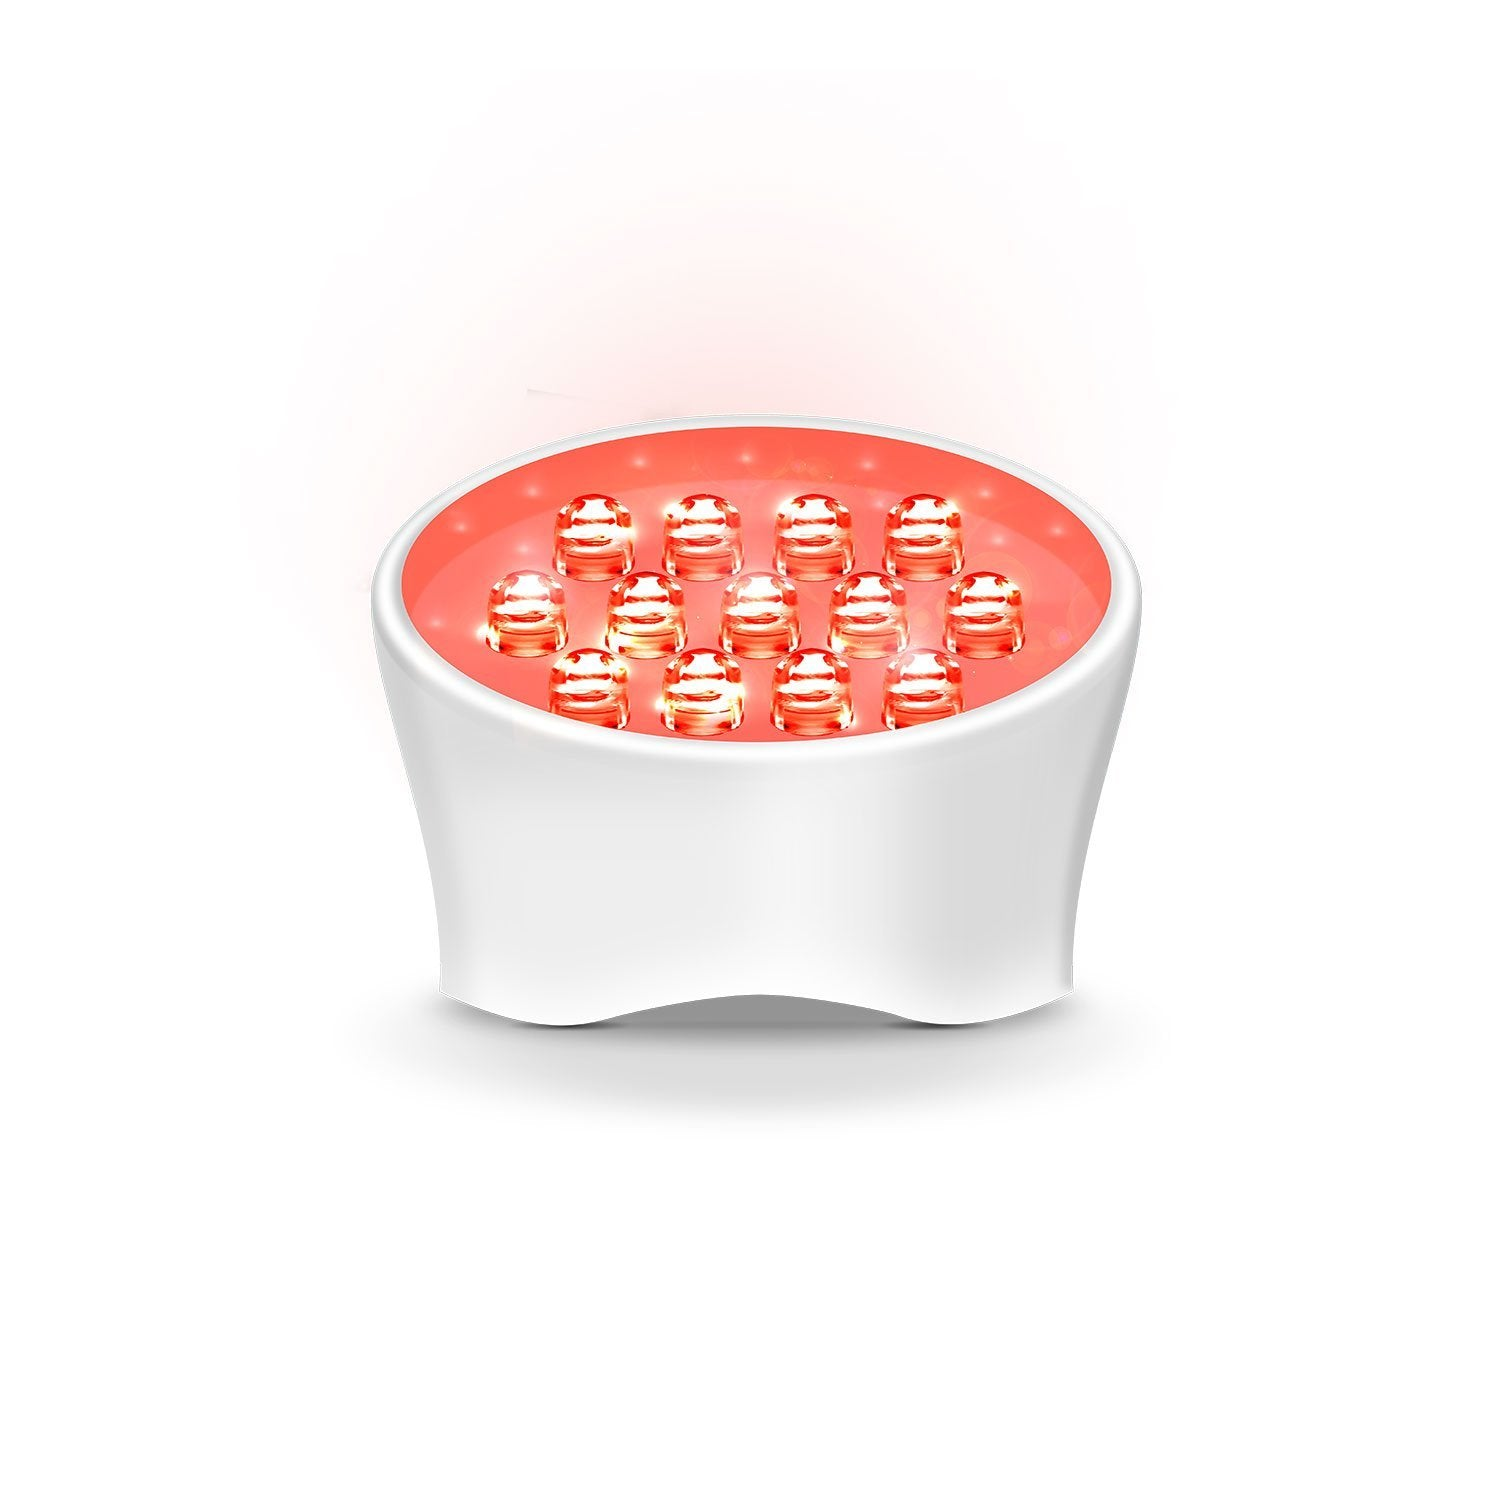 Nuovaluce Microcurrent & Light Therapy 2-in-One